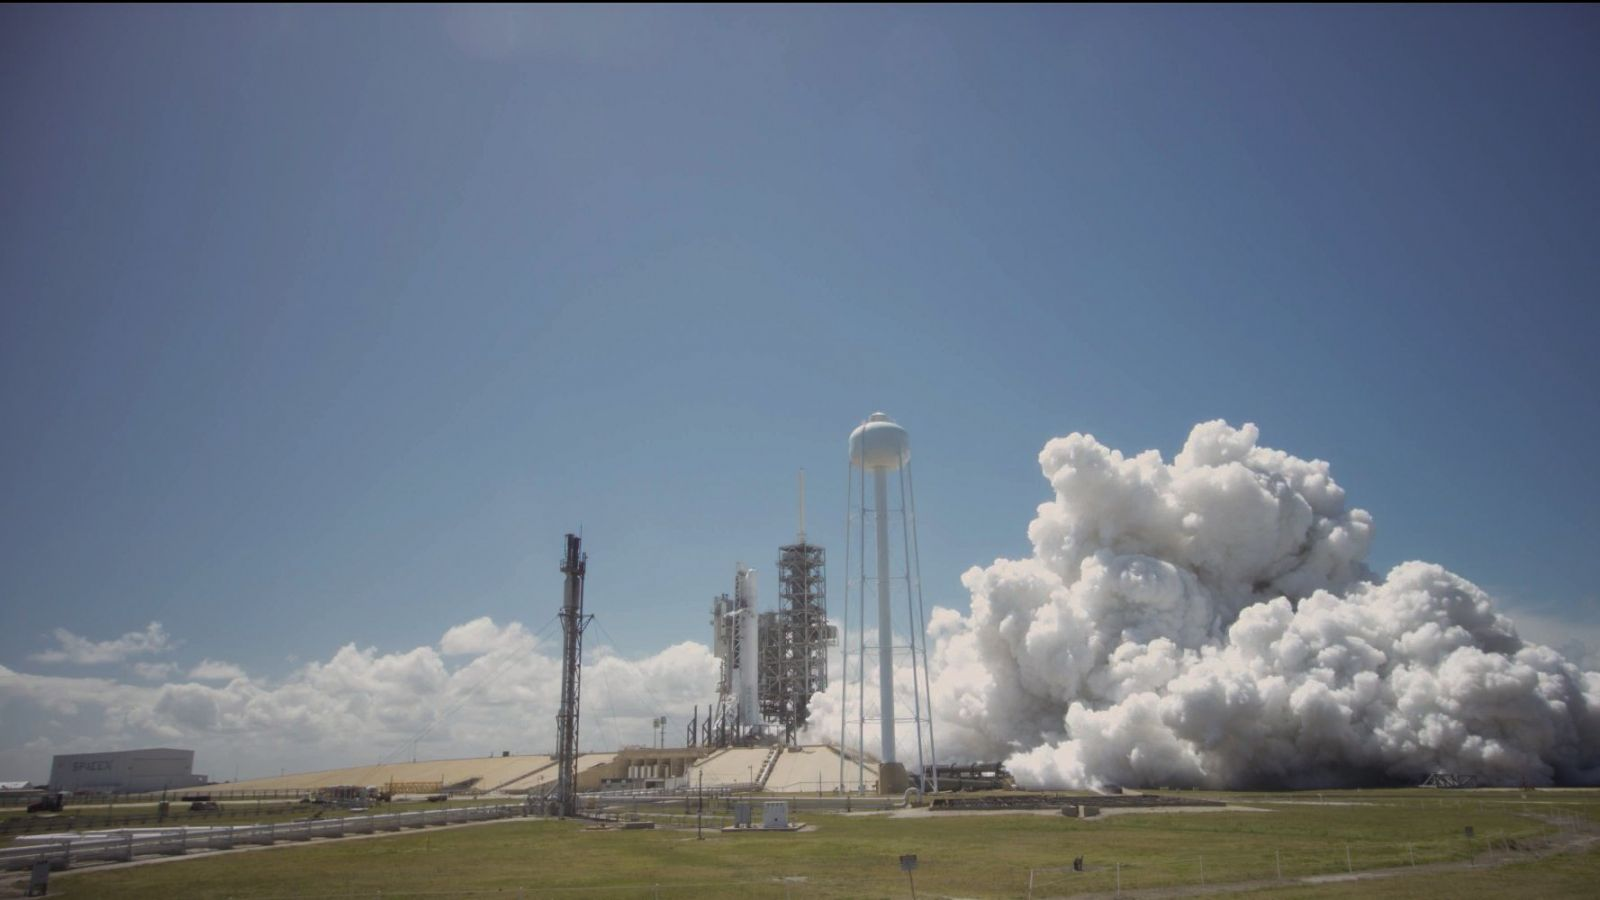 Falcon 9 static fire test